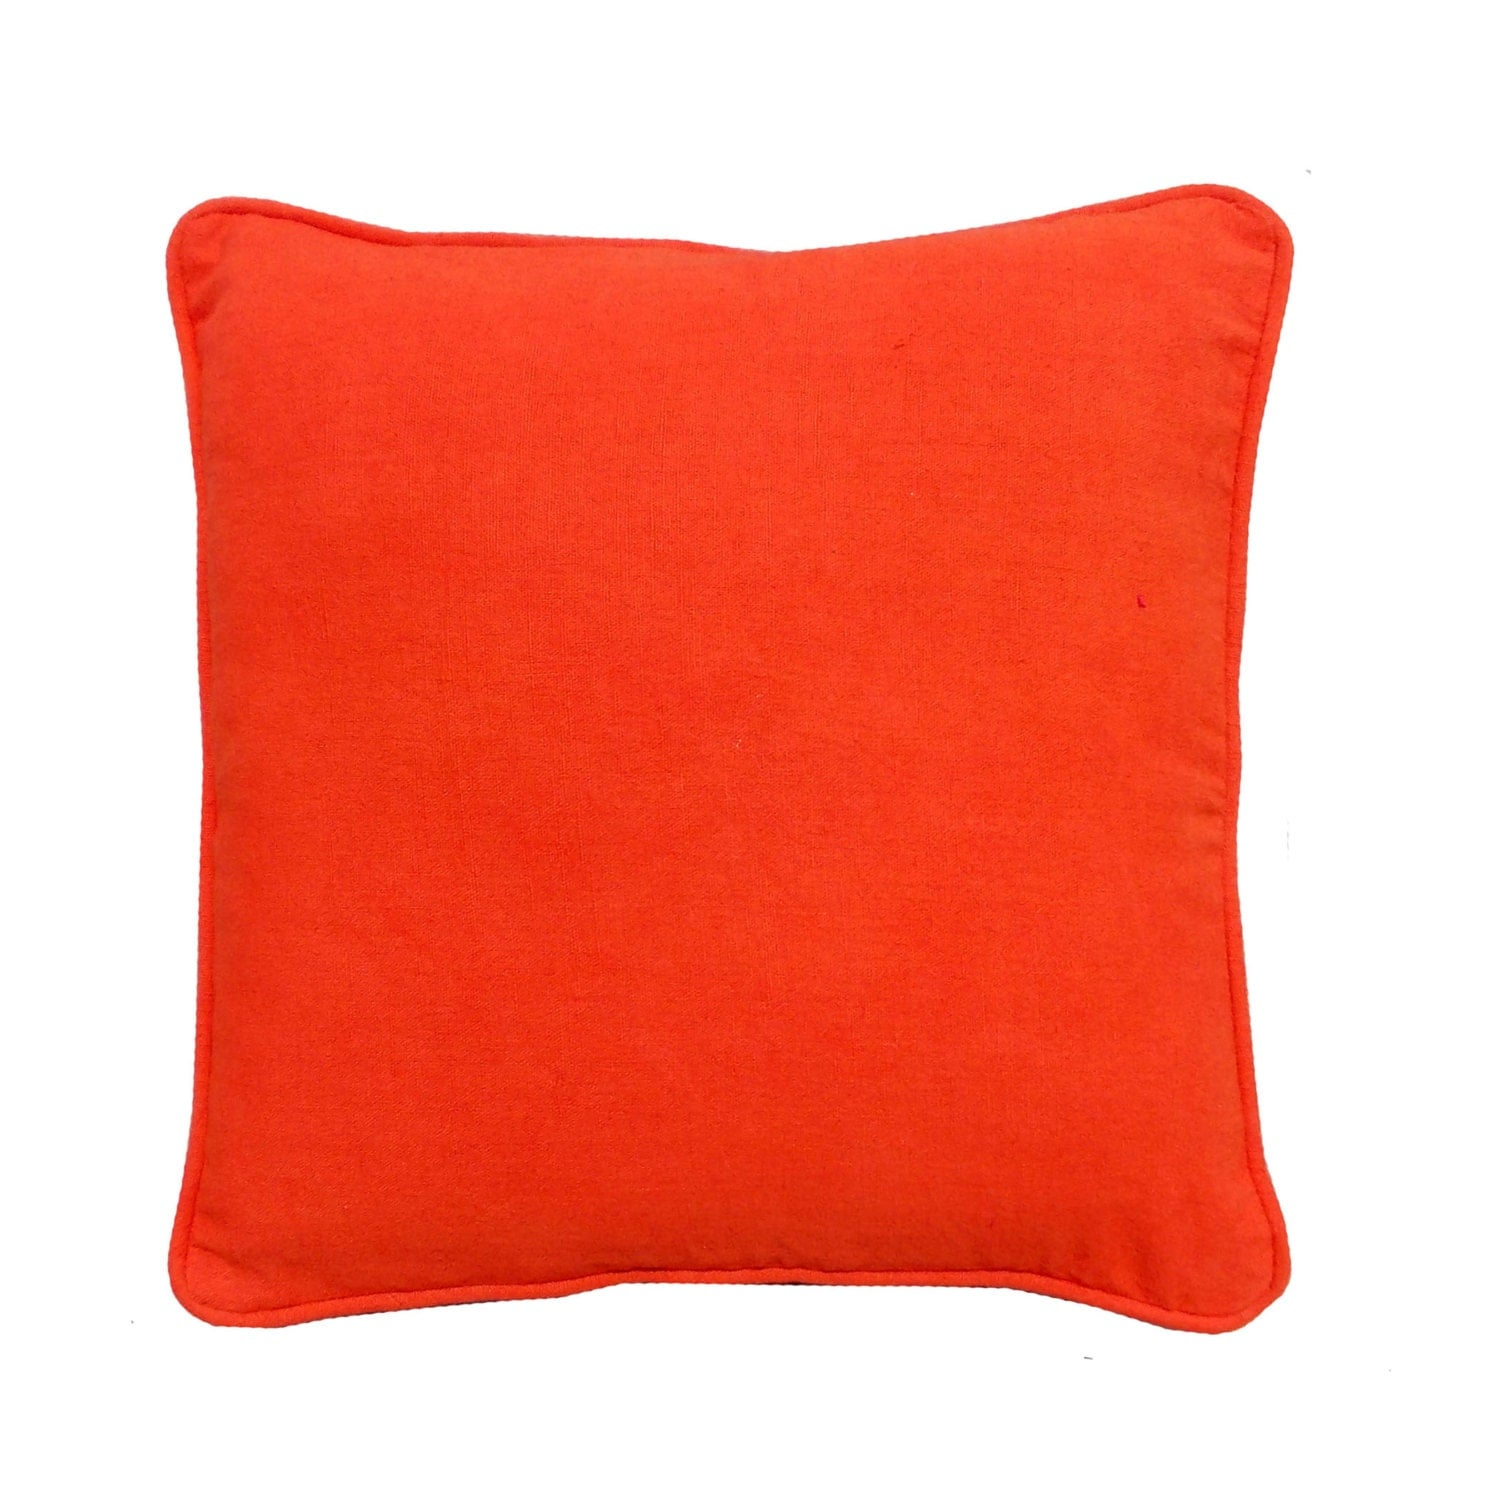 bright colored sofa pillows ashley furniture alenya and loveseat decorative orange pillow cover cotton by vliving